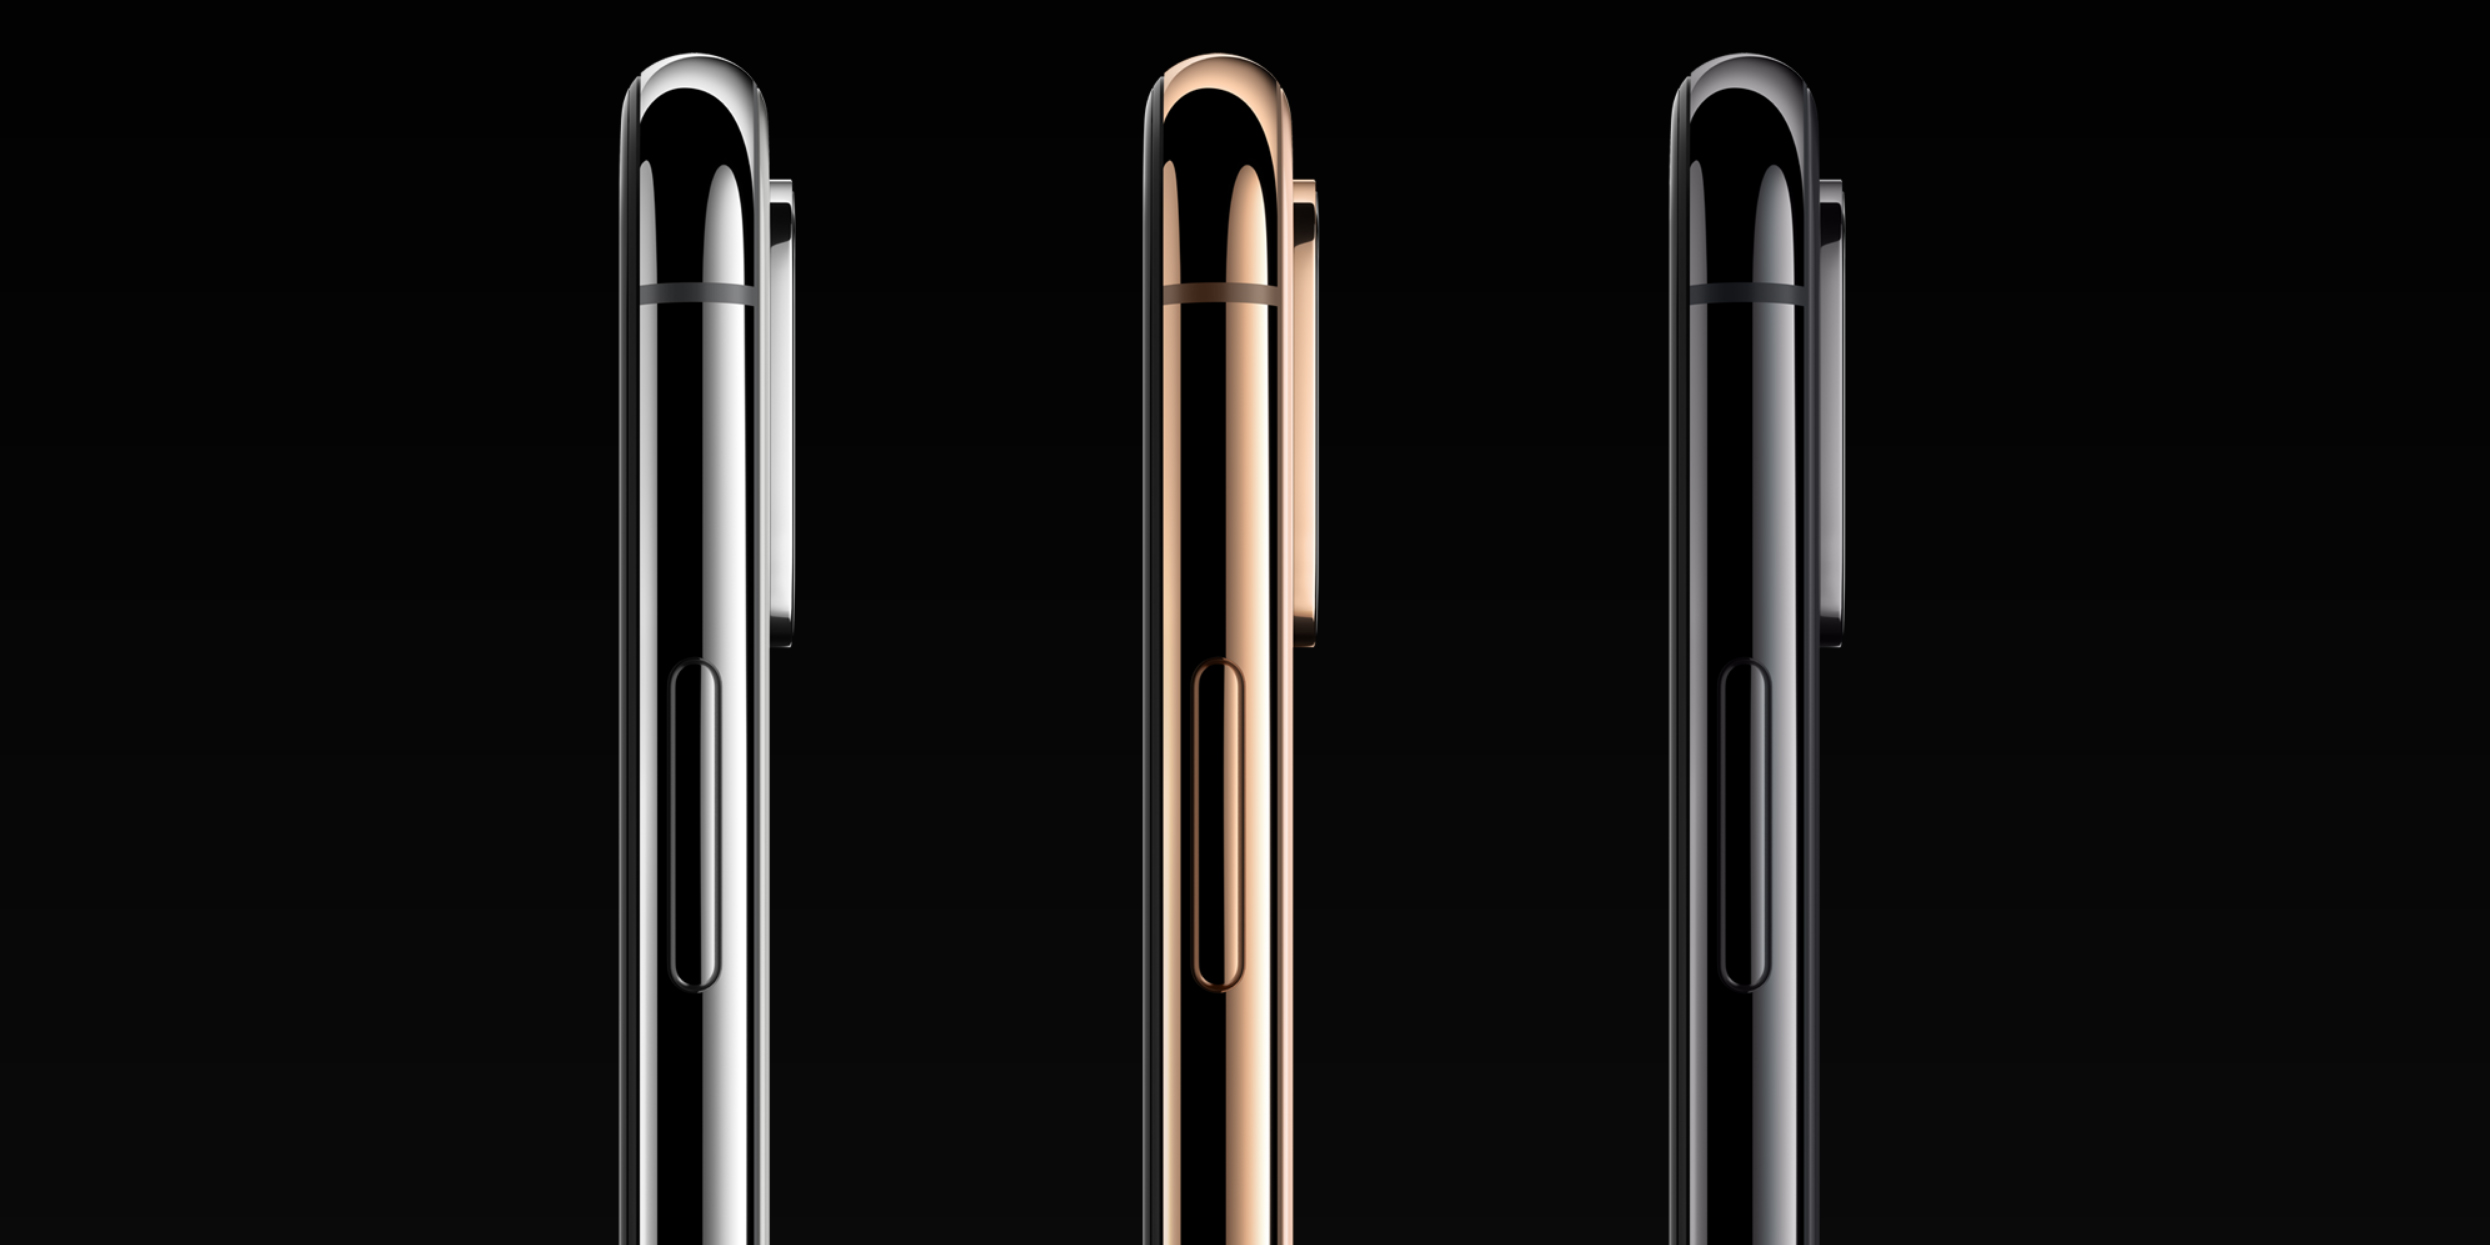 Iphone Xs Pre Order Deals Include Bogo Free Iphone 8 0 Mo After Trade In At Sprint More